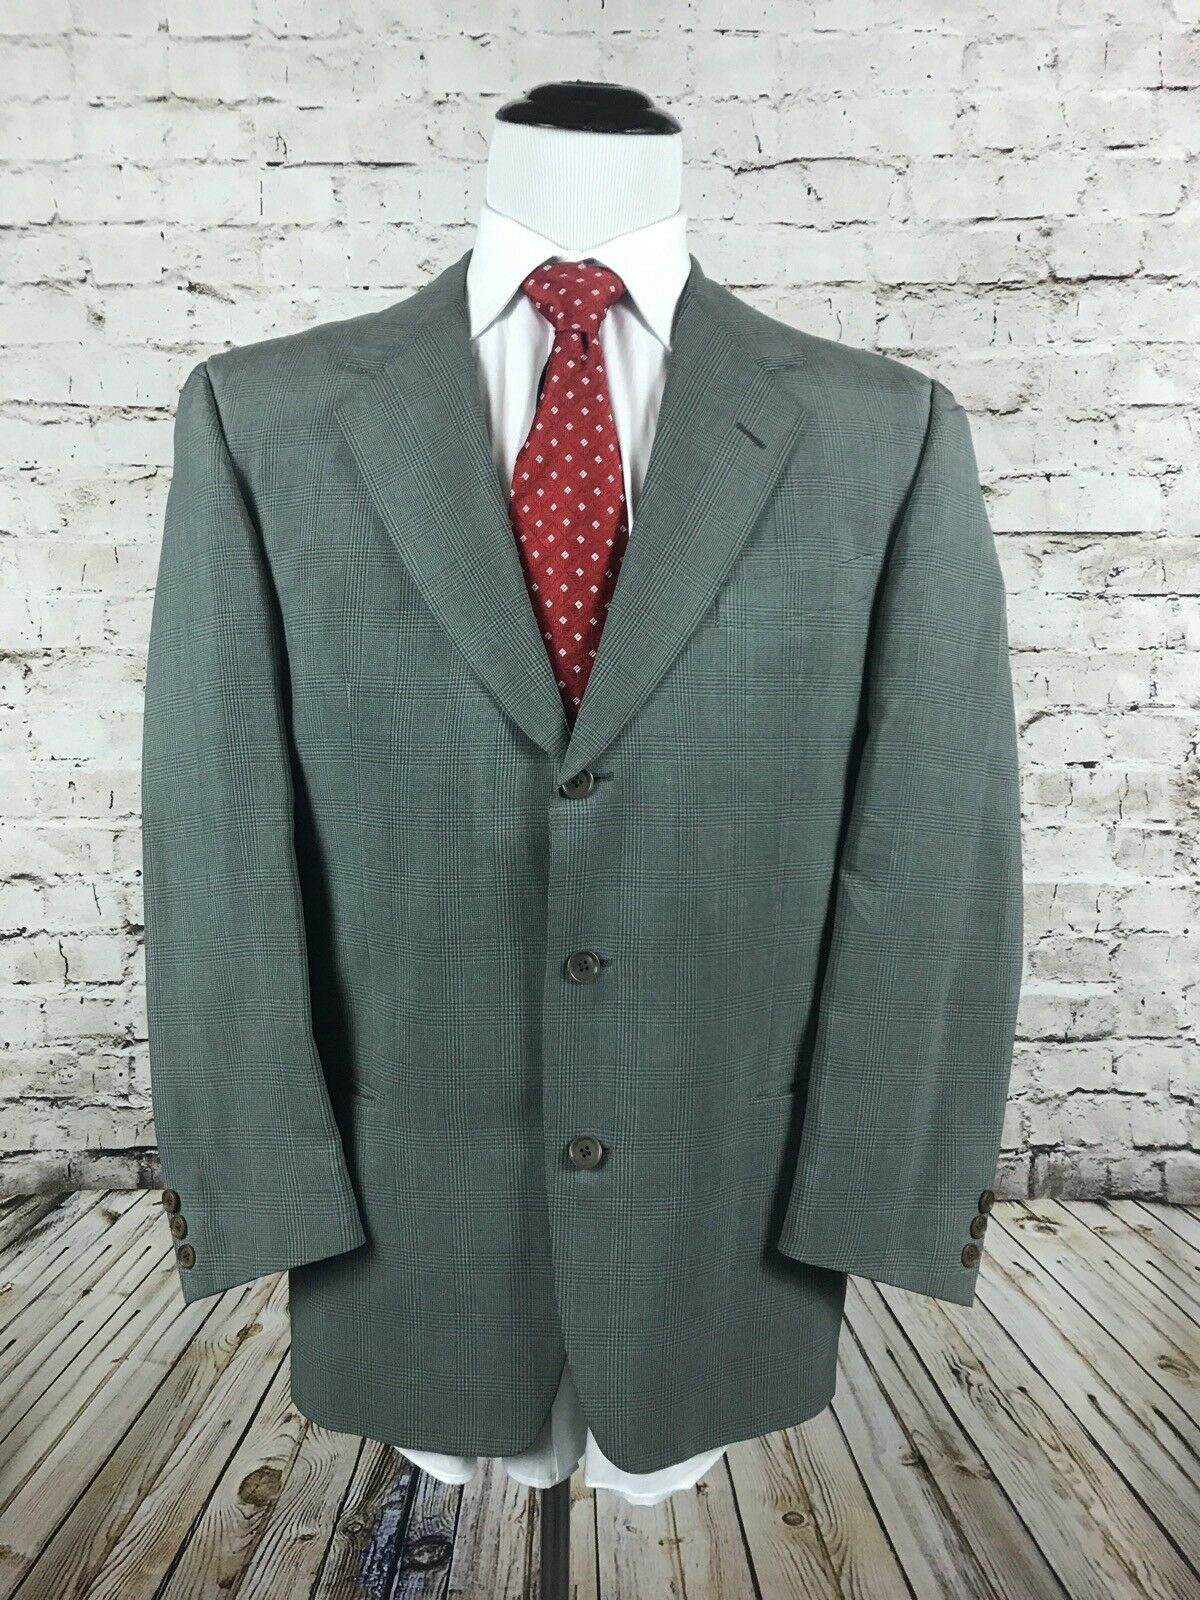 Ermenegildo Zegna Three Button verde Sport Cappotto Size 40R 100% Silk verde Button Glen Plaid be4c47